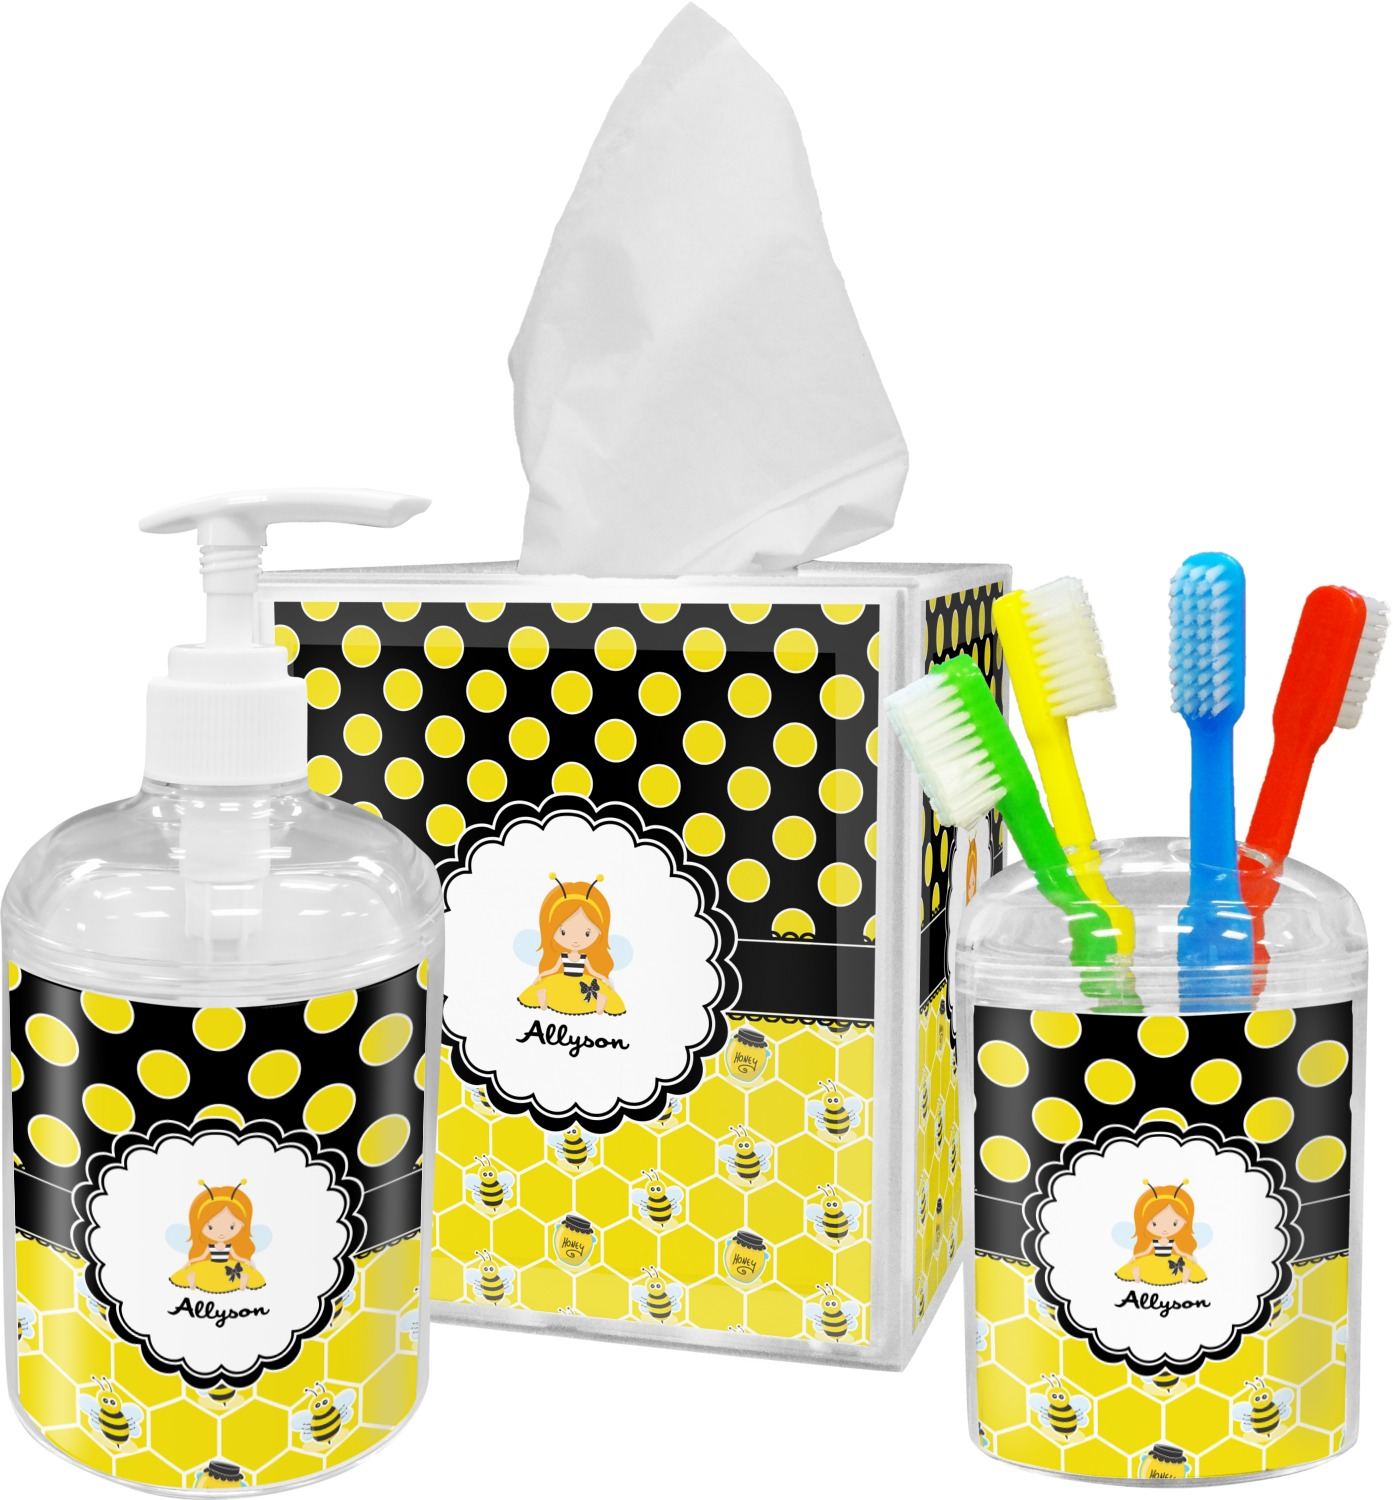 Honeycomb Bees Polka Dots Bathroom Accessories Set Personalized Youcustomizeit